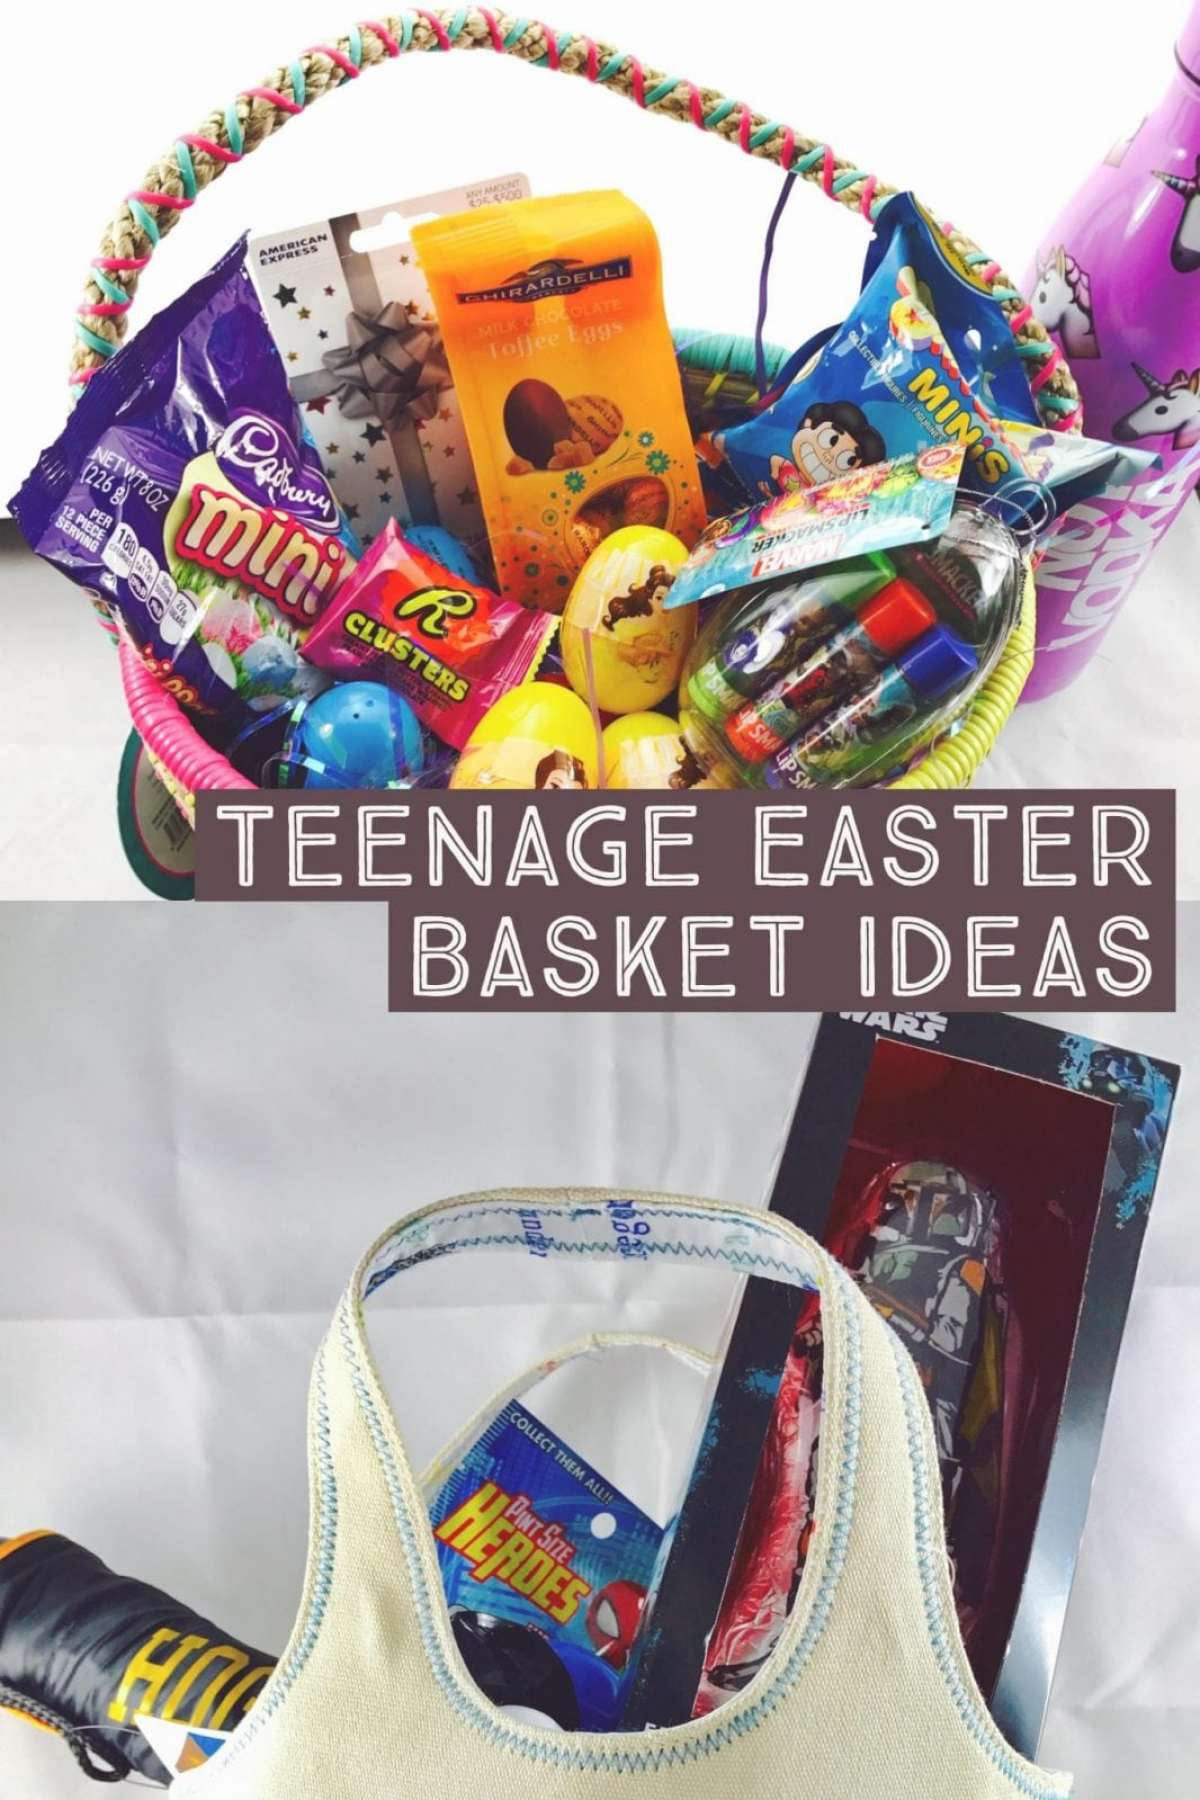 Last Minute ideas for your teens easter basket cause the kiddy eggs aren't gonna cut it.